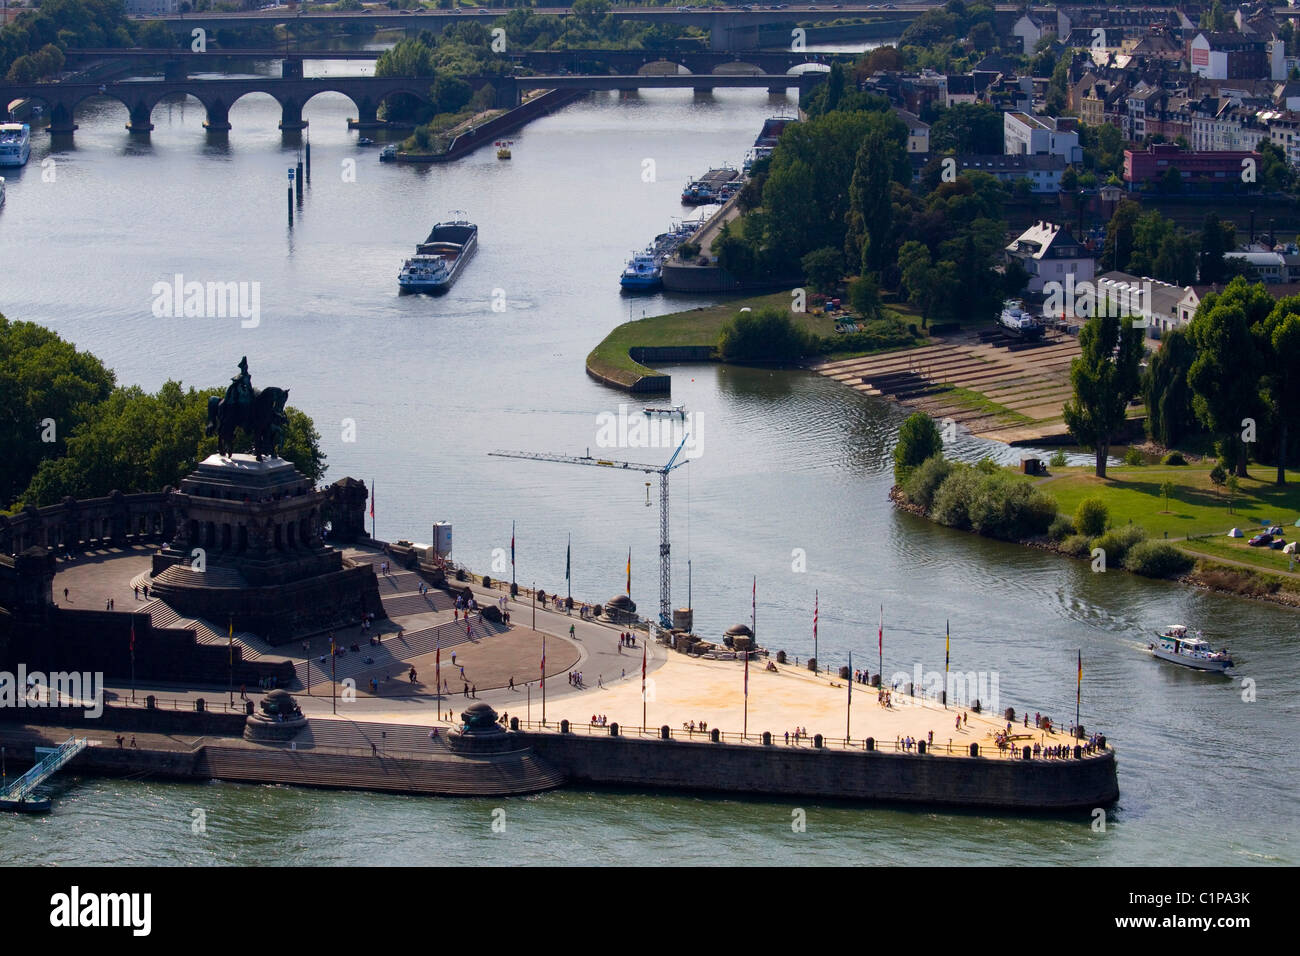 Germany, Koblenz, Deutsches Eck, headland and river in city - Stock Image